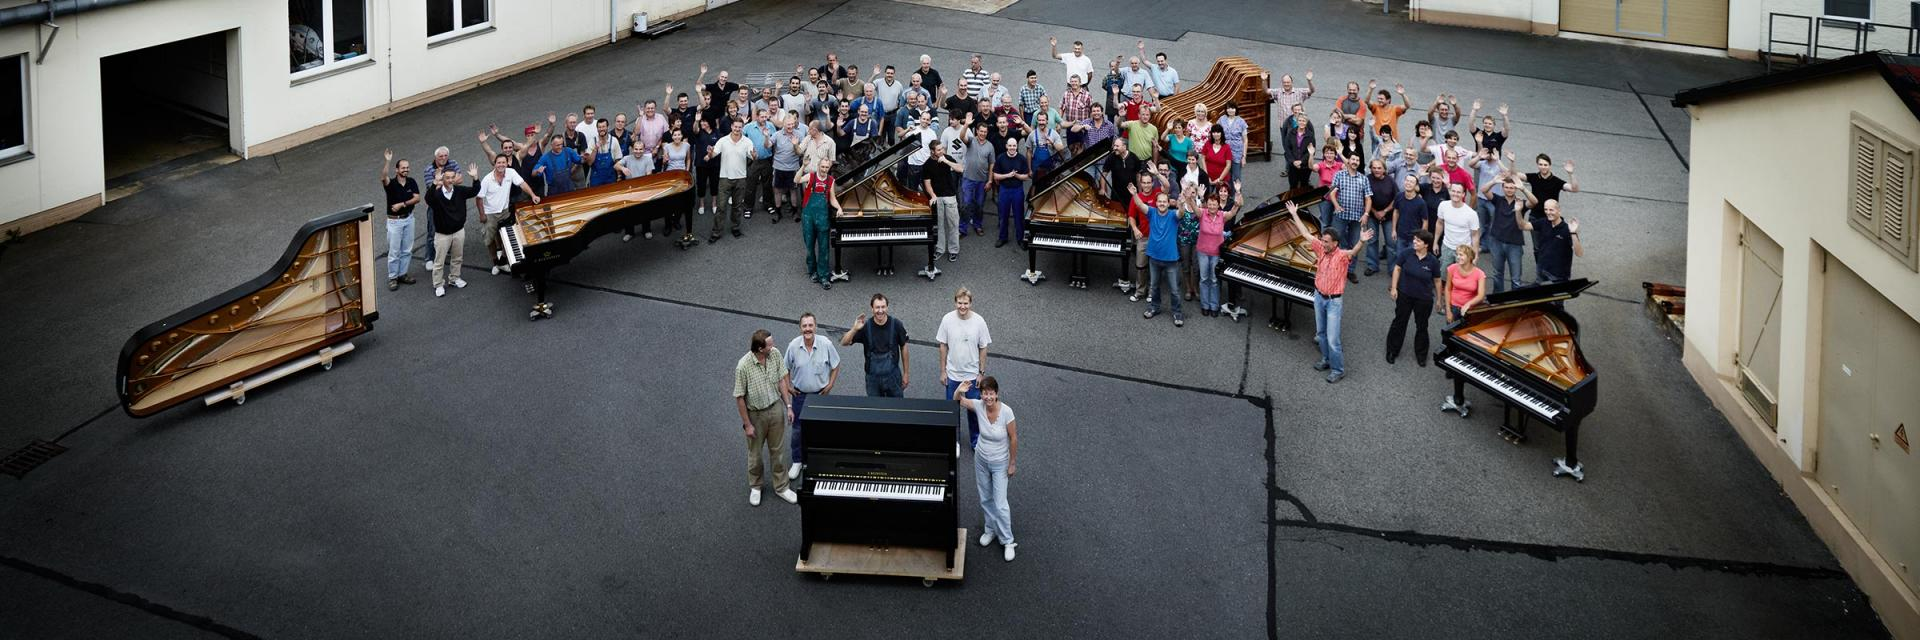 Bechstein manufaktur team